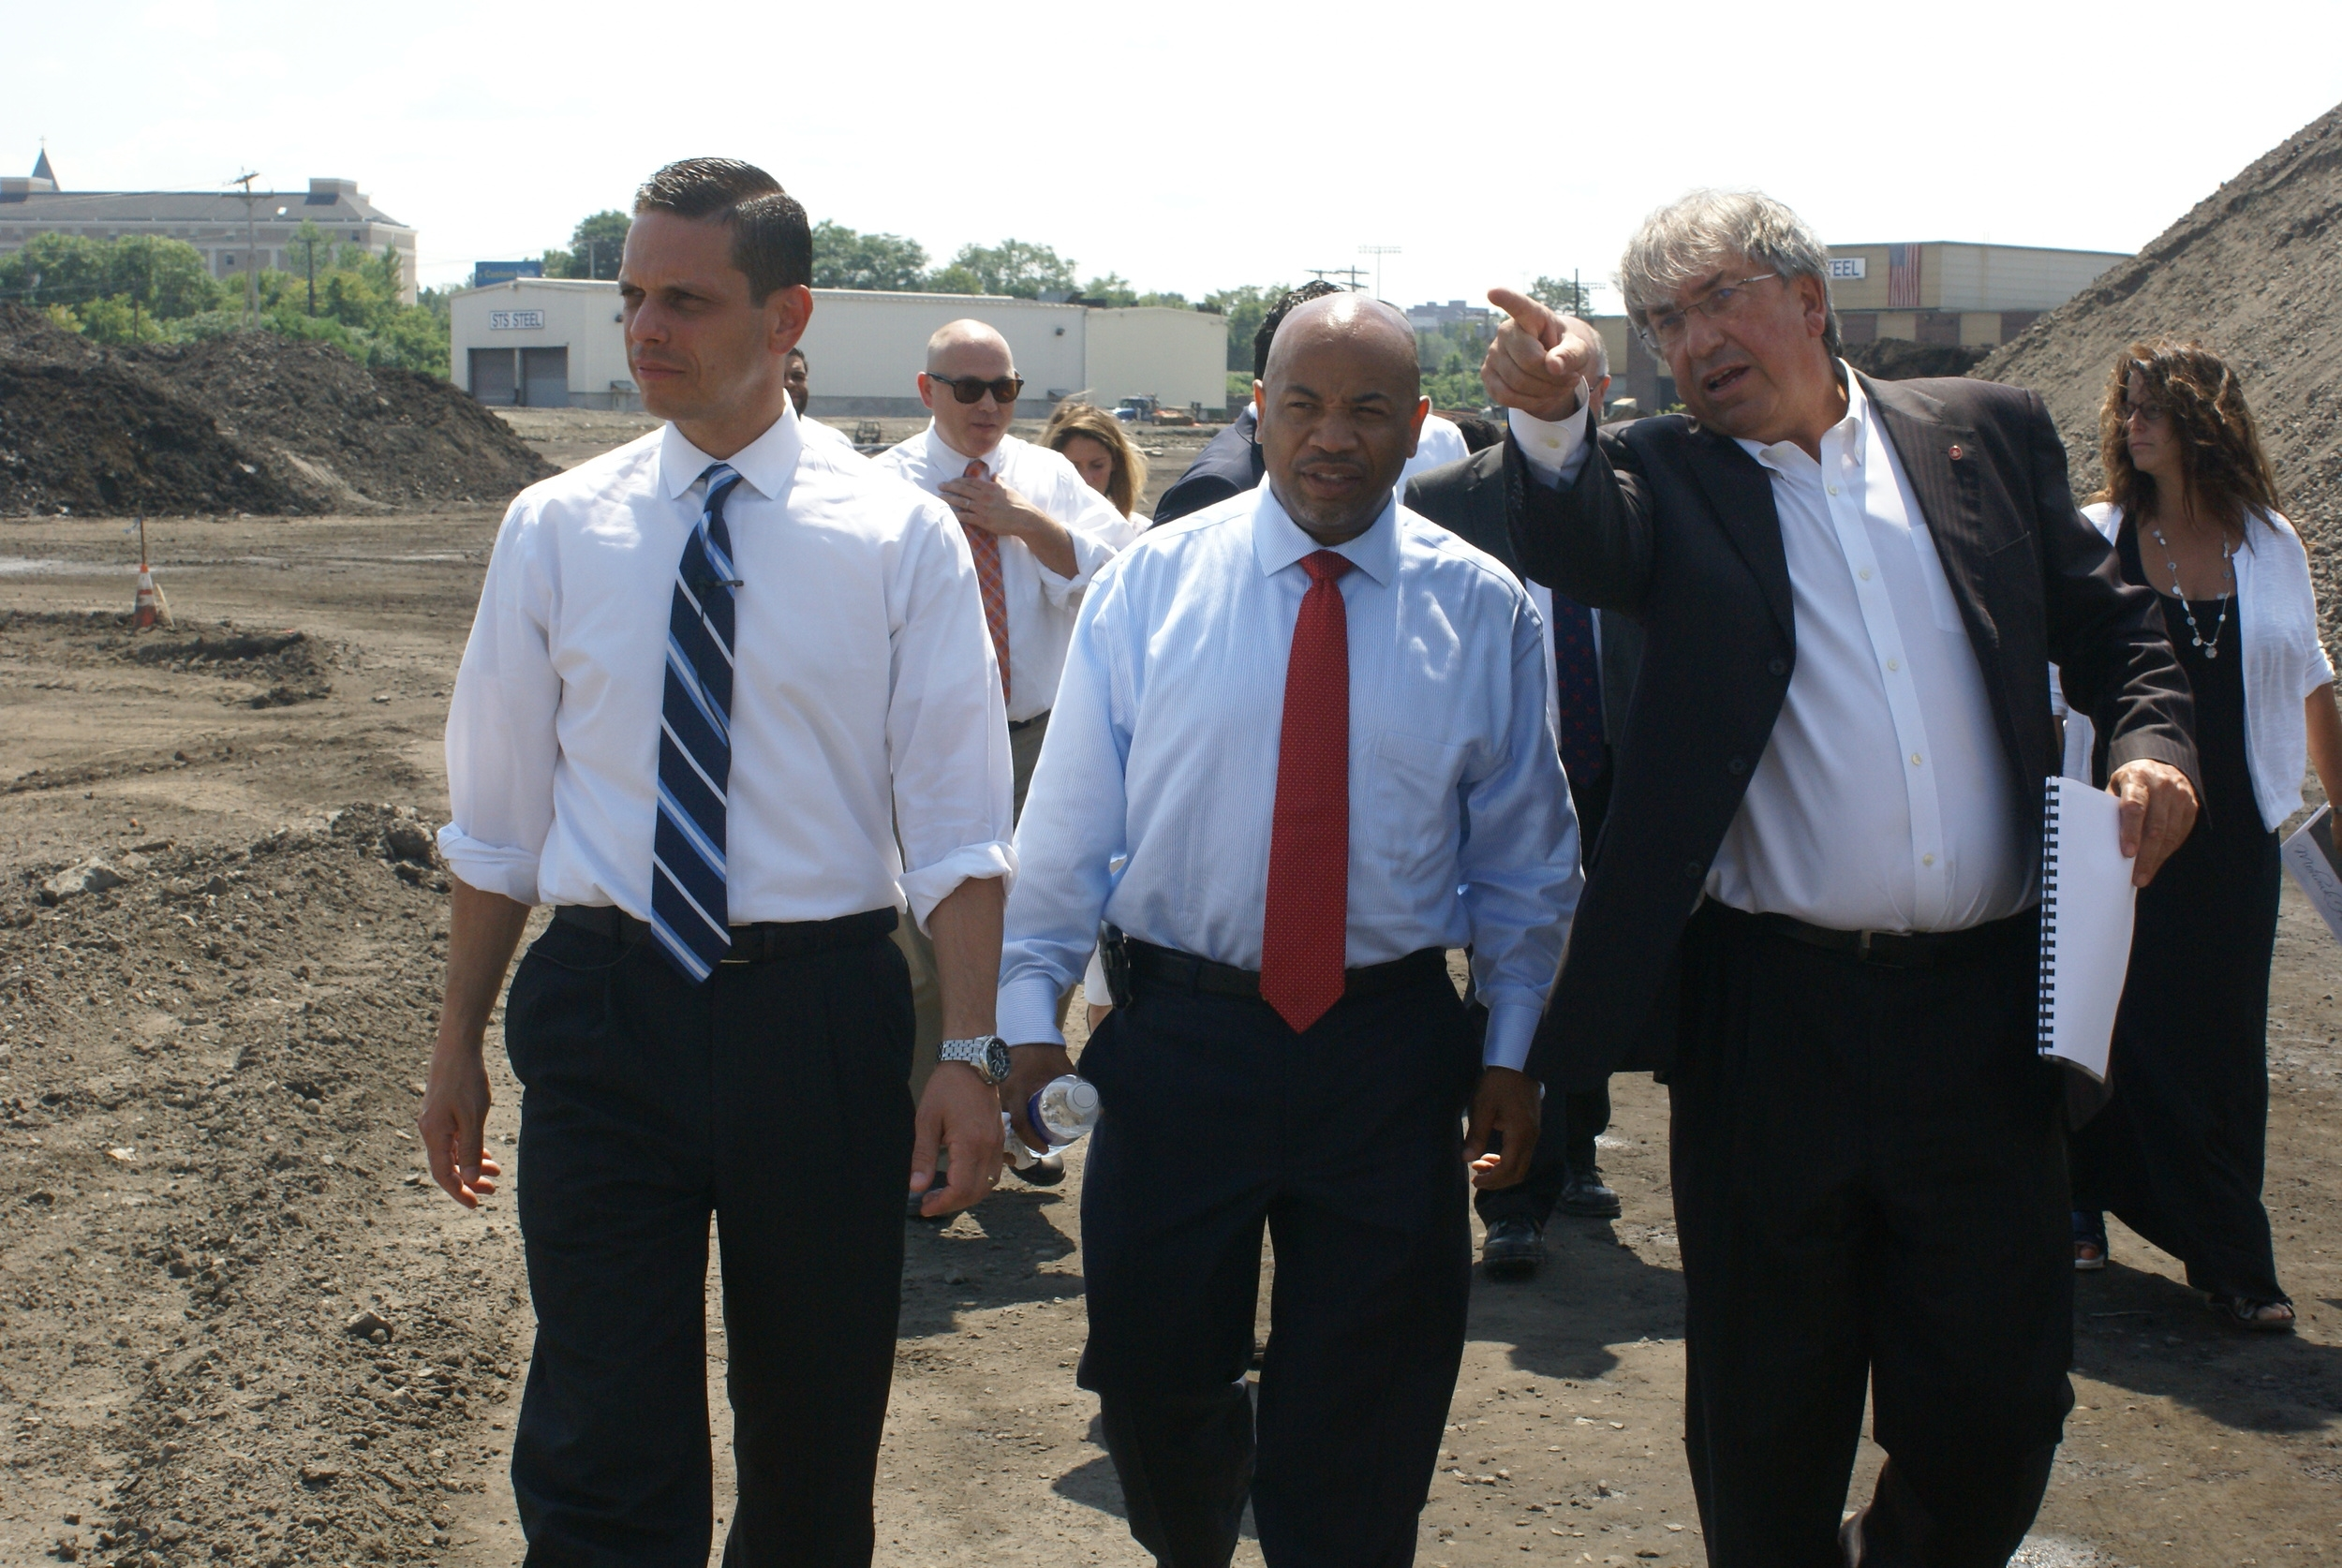 Assemblyman Angelo Santabarbara and Galesi Group COO David Buicko led Assembly Speaker Carl Heastie on a tour of the Mohawk Harbor in Schenectady, which is the future home of the Rivers Casino & Resort.